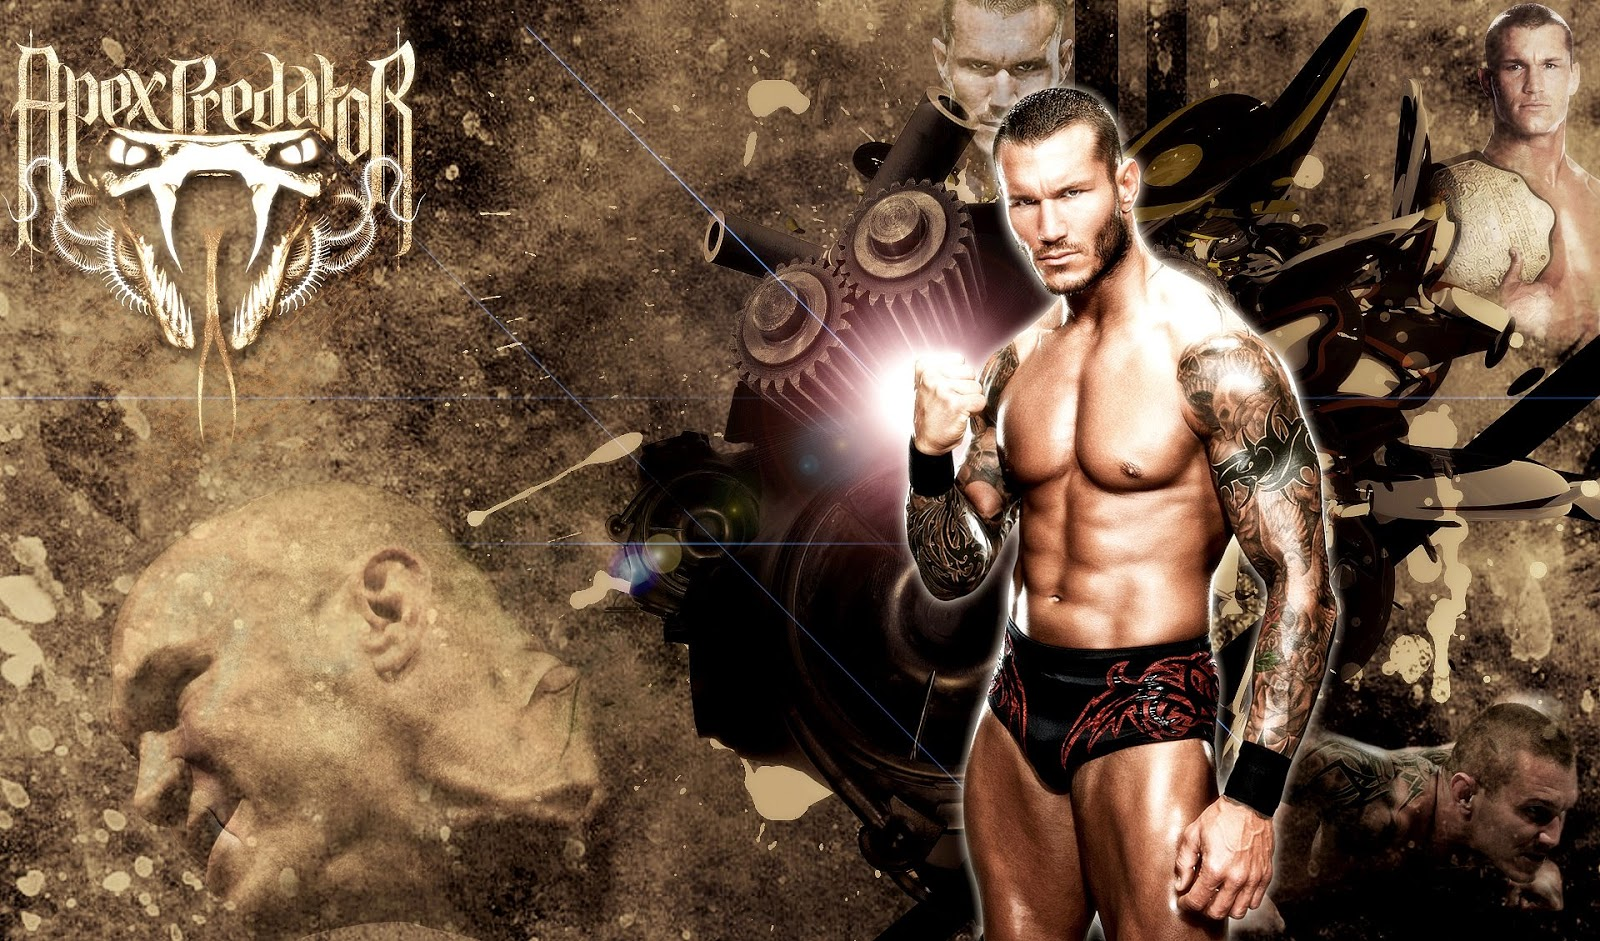 Randy Orton HD Wallpaper 2013